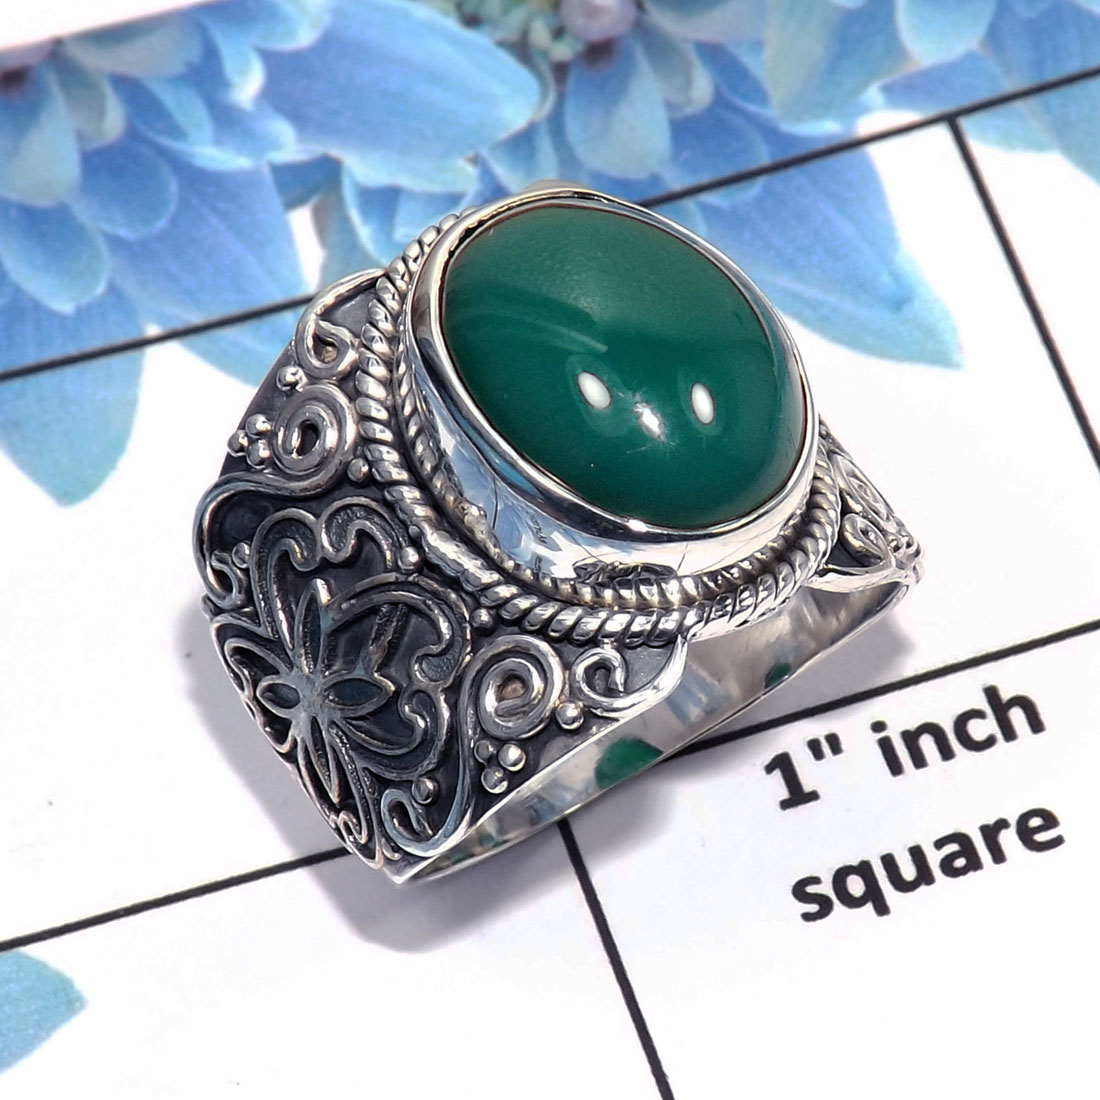 Green Onyx Ring-C SDR445- Green Onyx Cab Made in Solid 92.5% Handmade Designer Ring